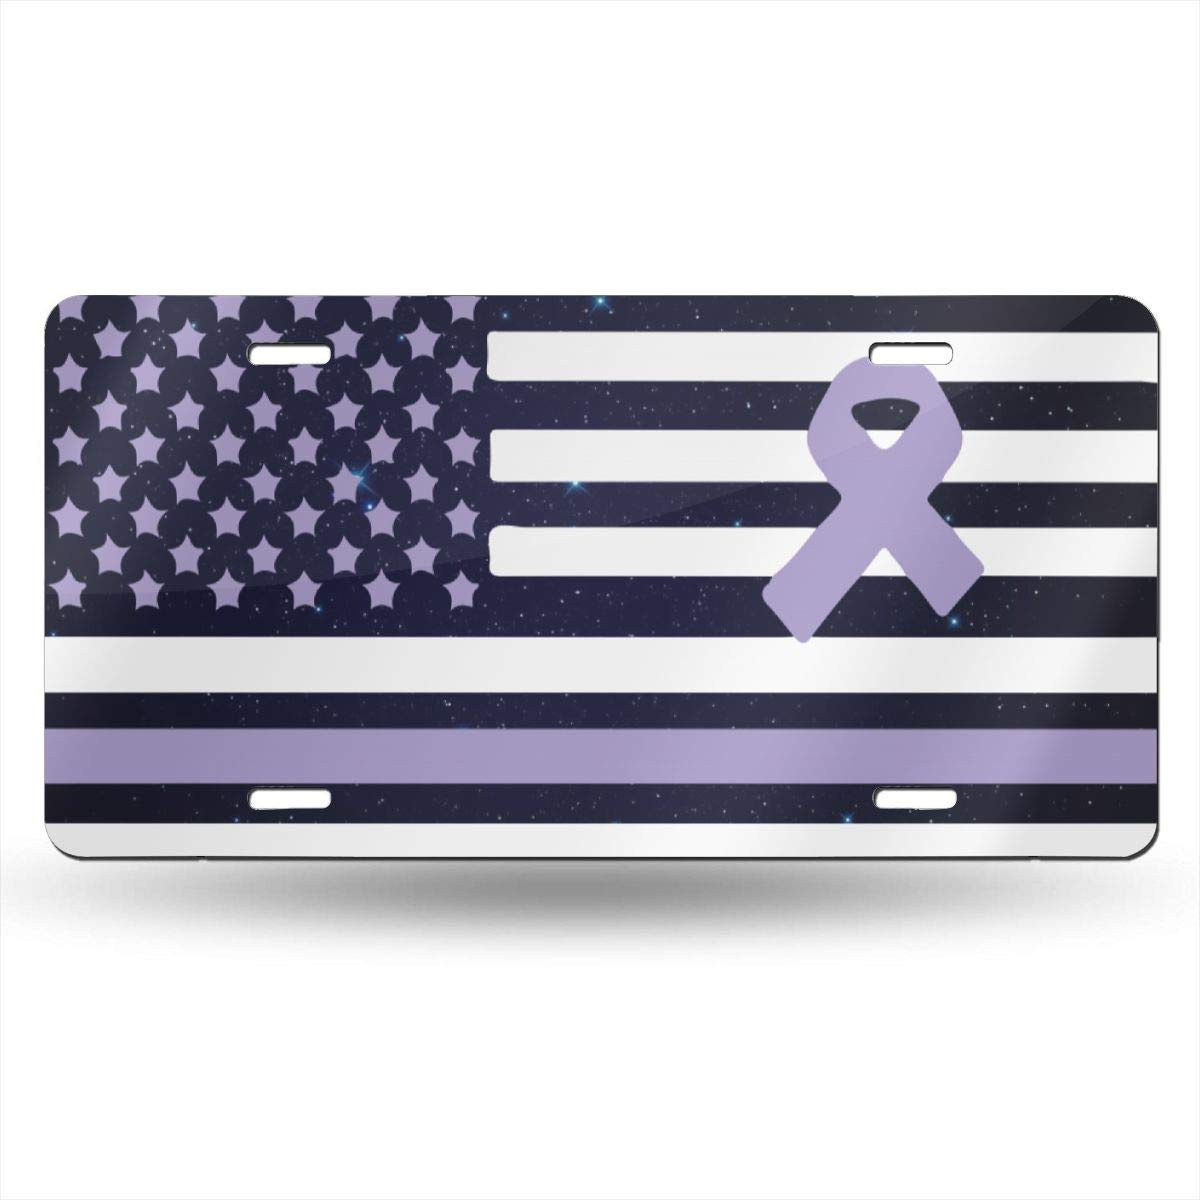 Personalized Novelty Front License Plate Decorative Vanity Aluminum Auto Car Tag 12 x 6 Inch